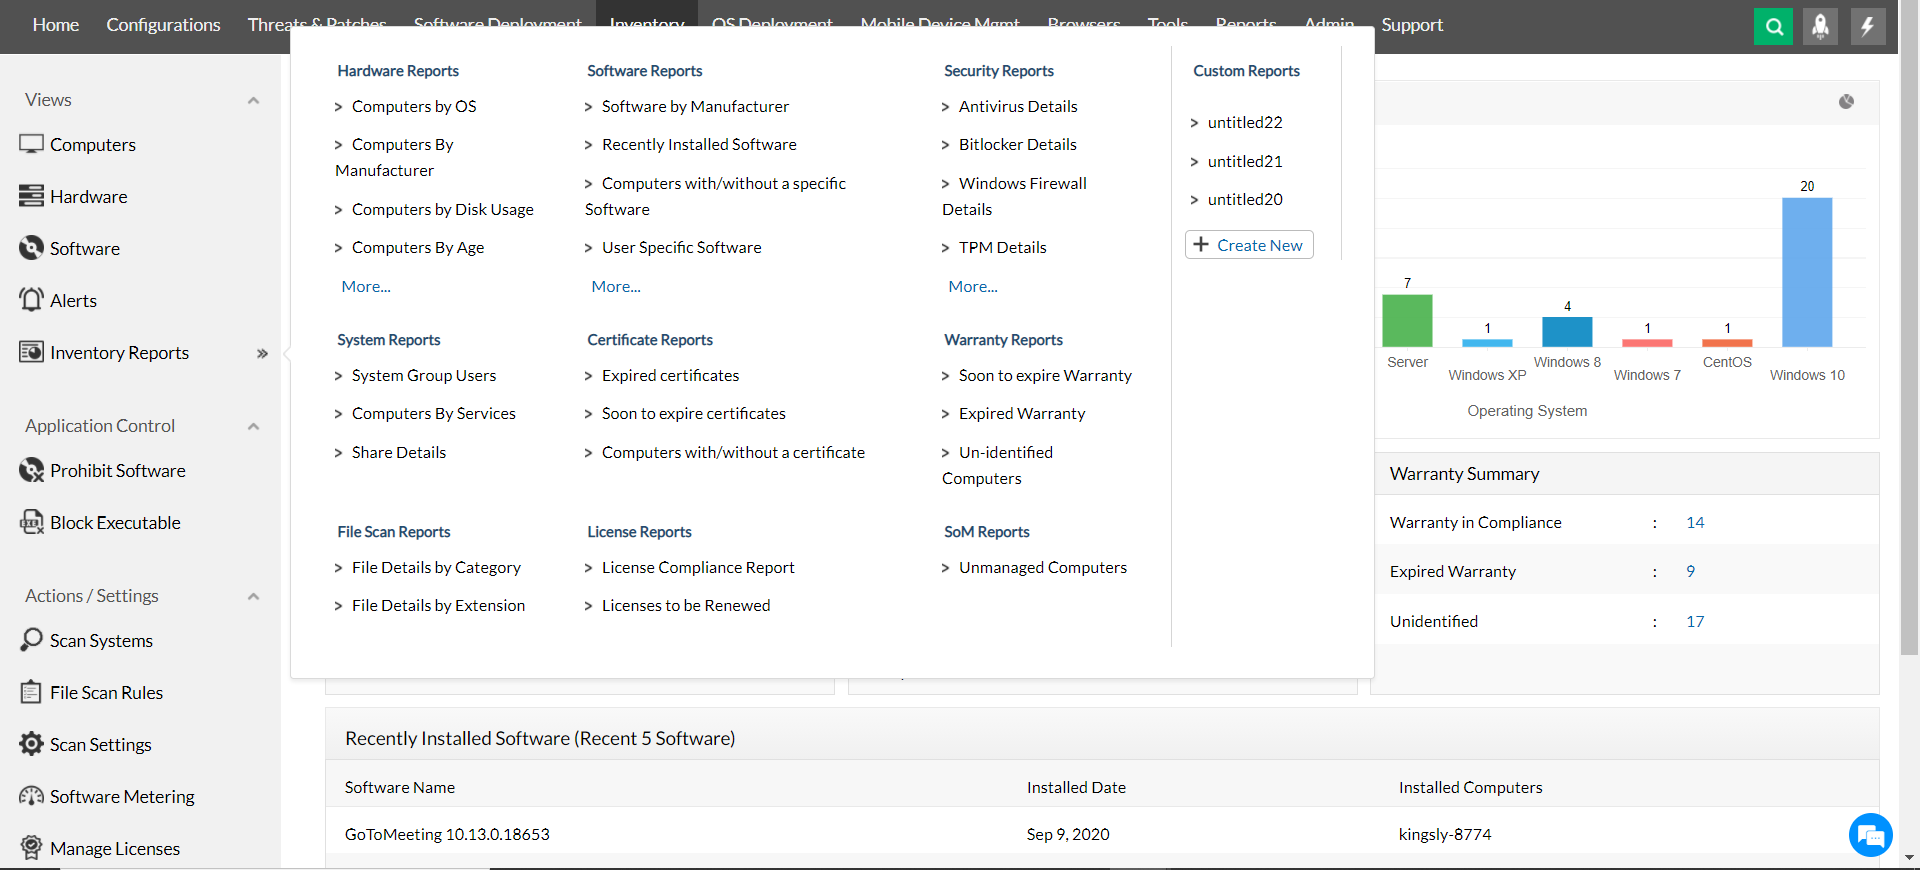 Built-in software inventory reports